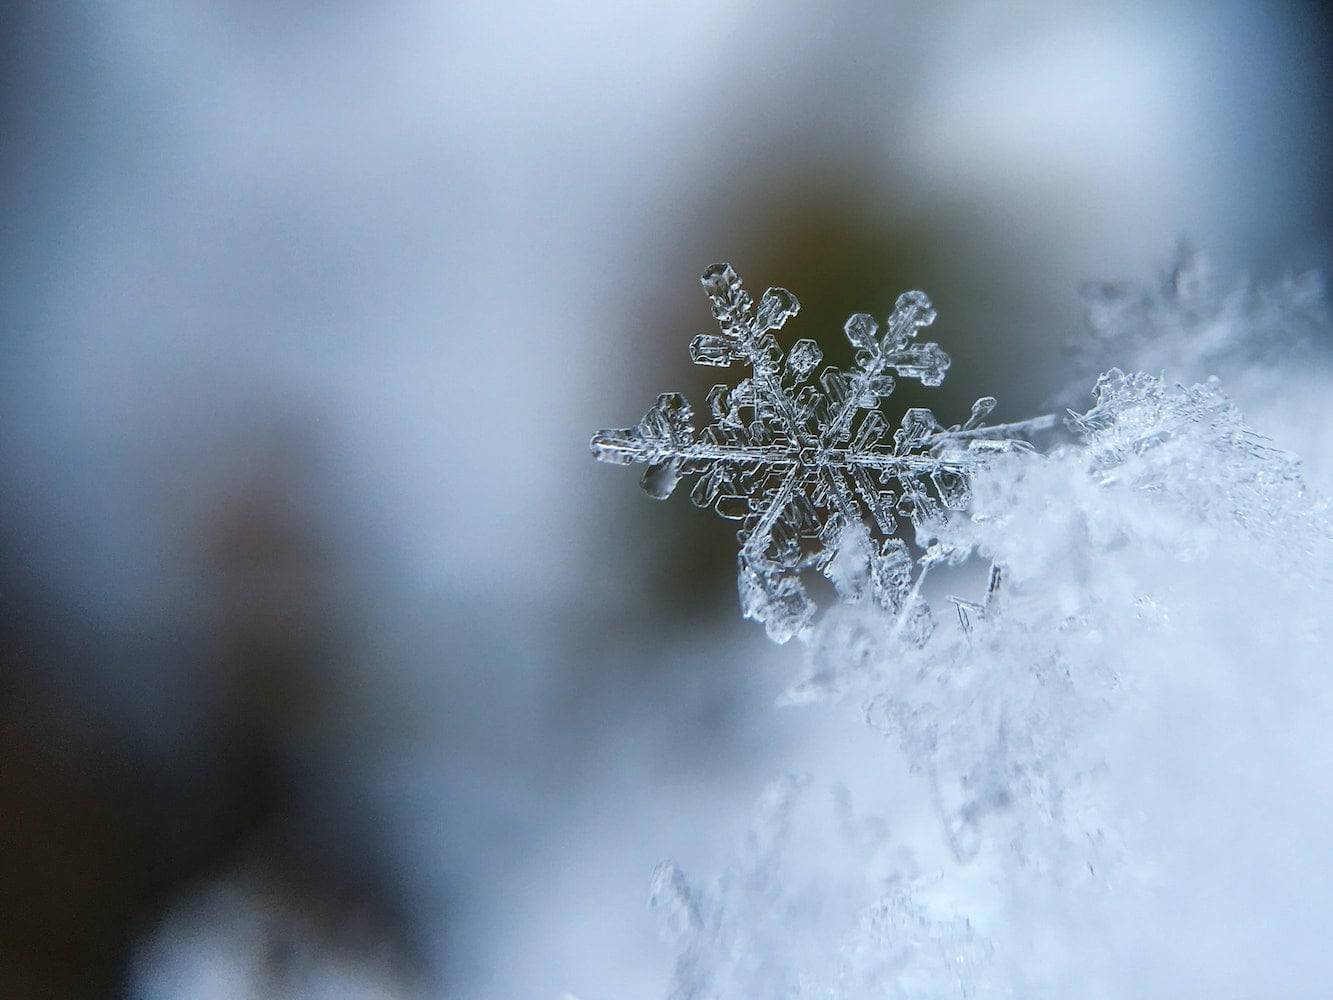 focus on snowflake in a winter setting